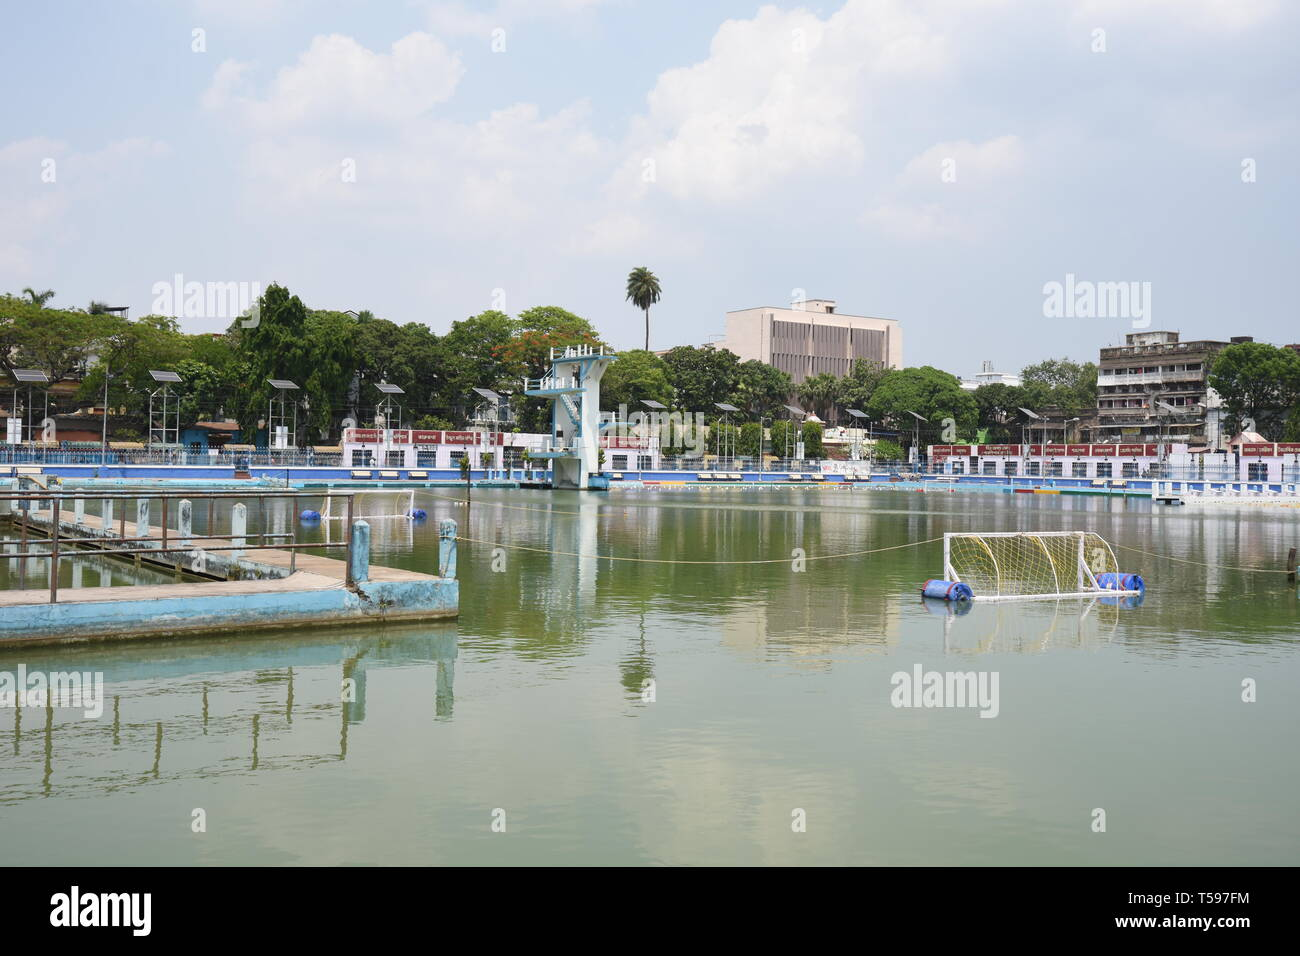 College Square Swimming Pool, Kolkata, India Stock Photo ...